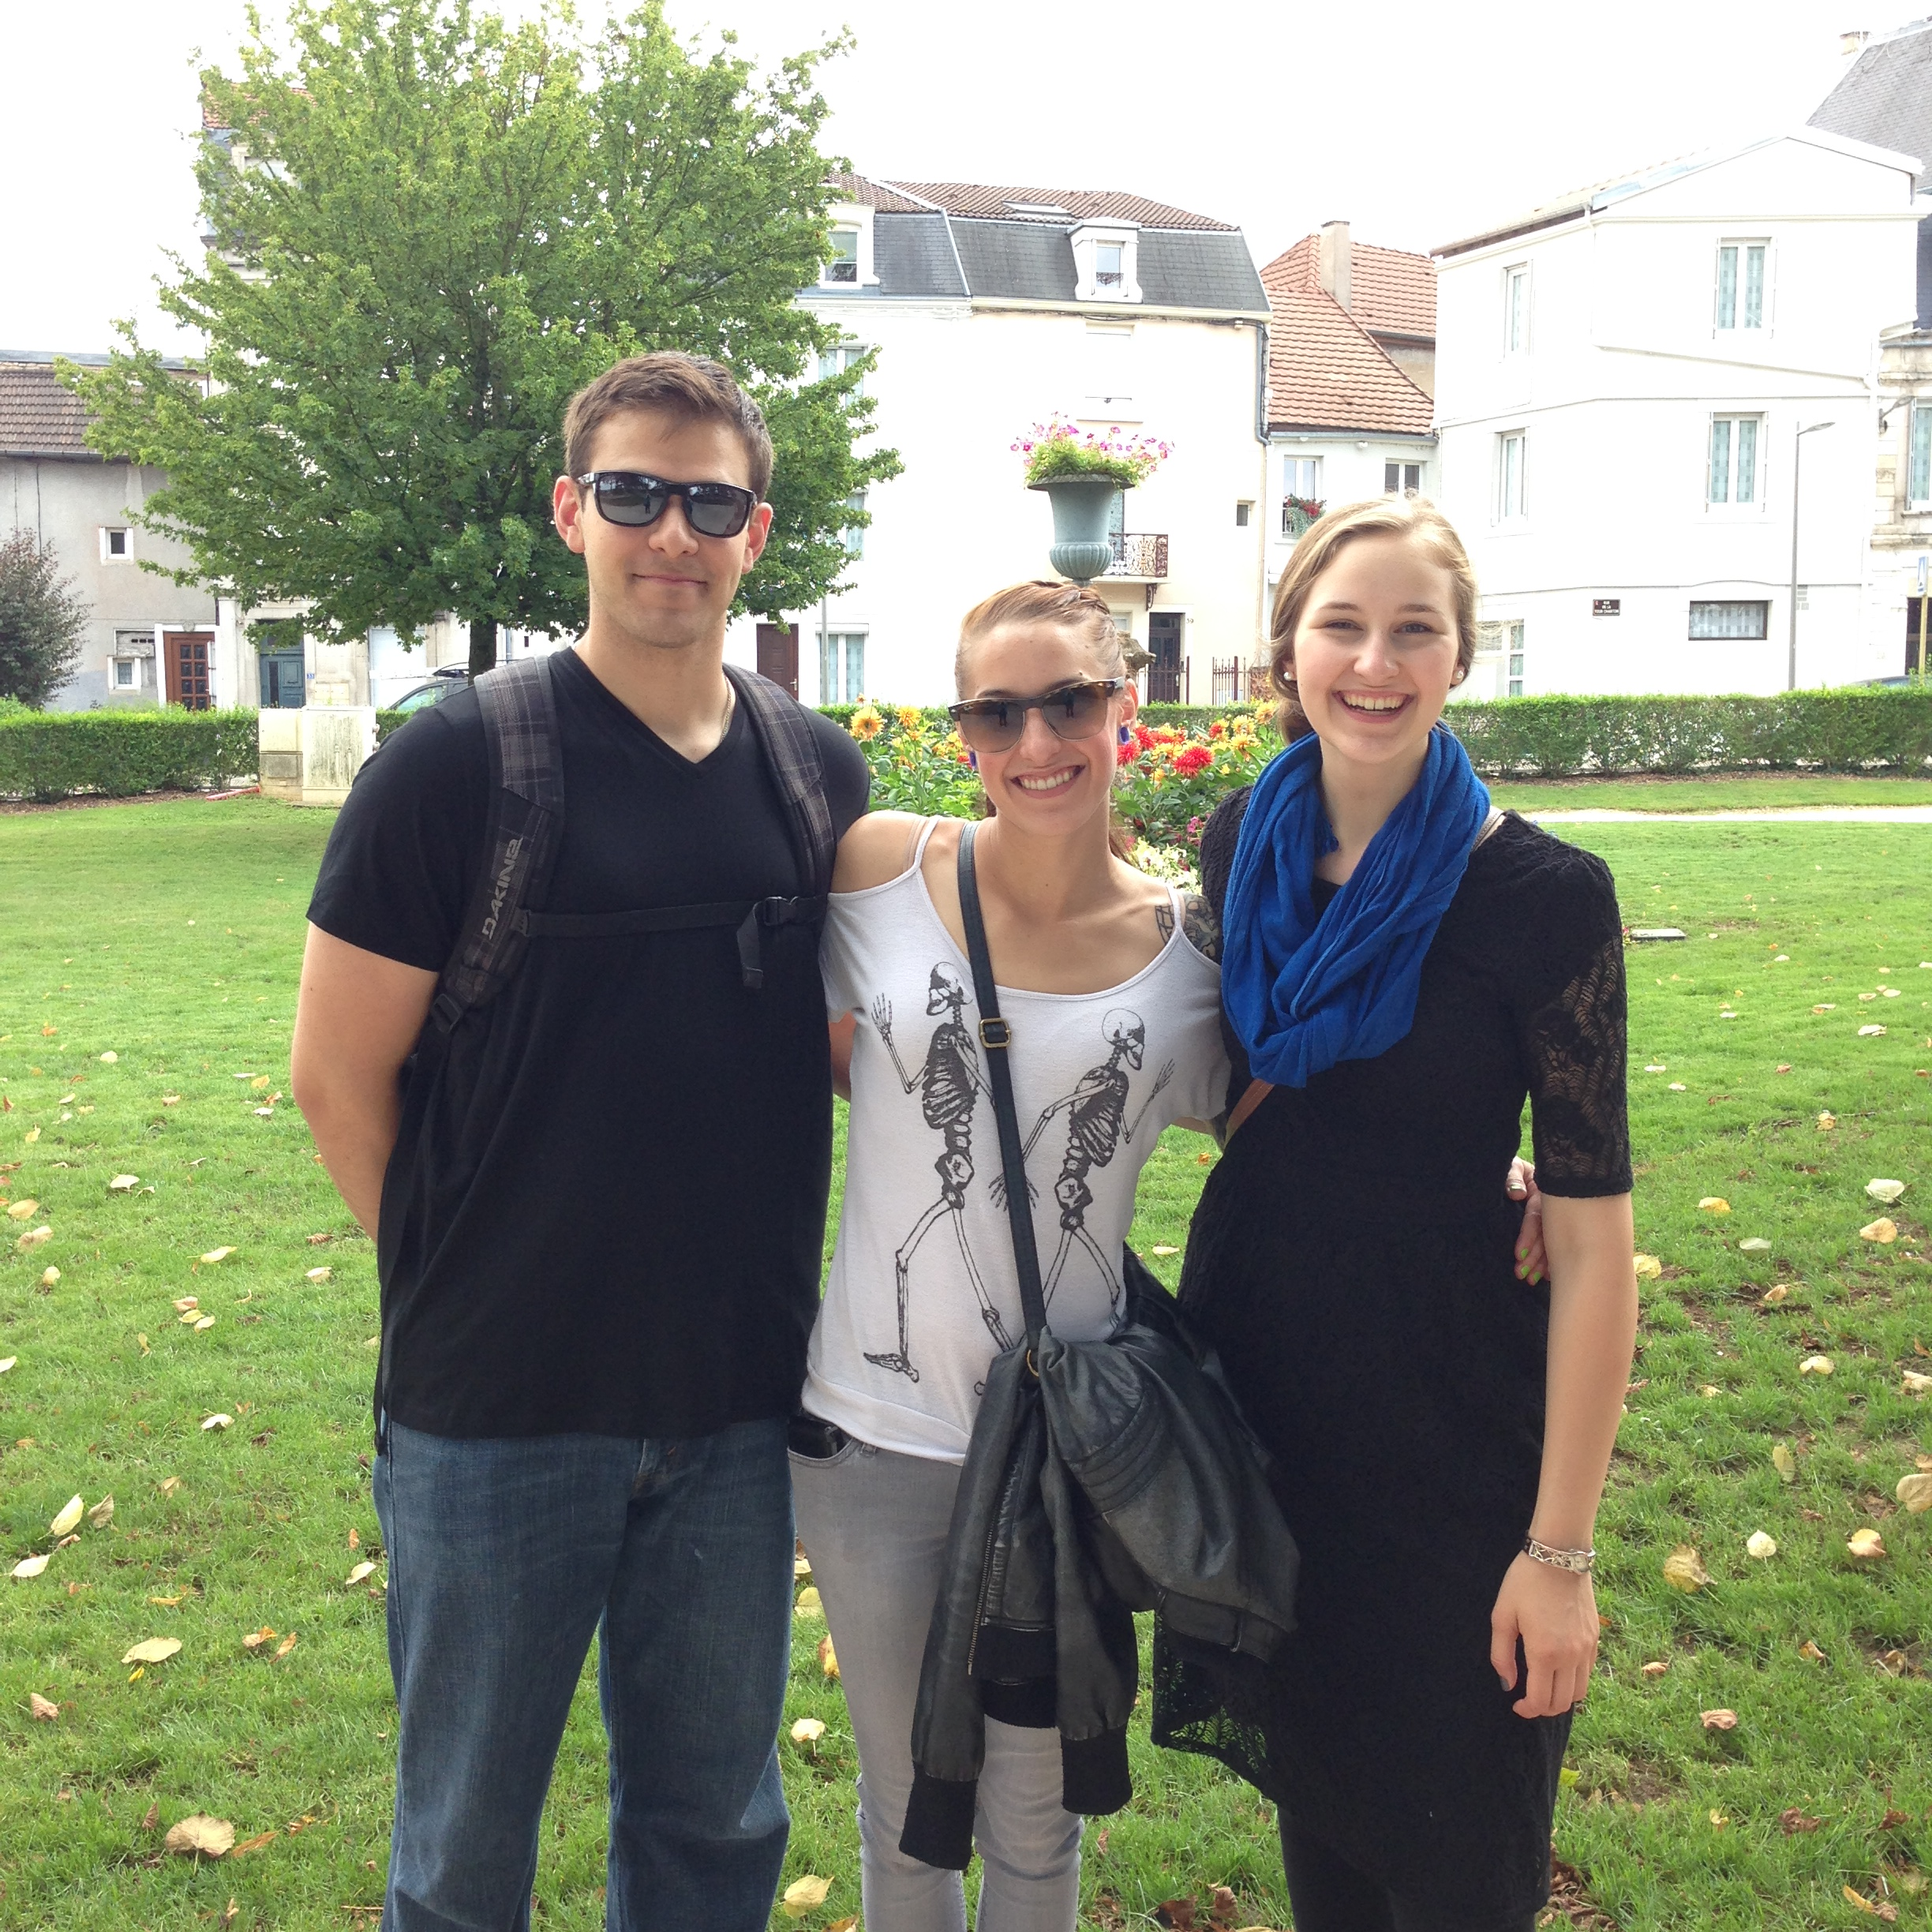 Siblings in Chaumont Centre-Ville, France